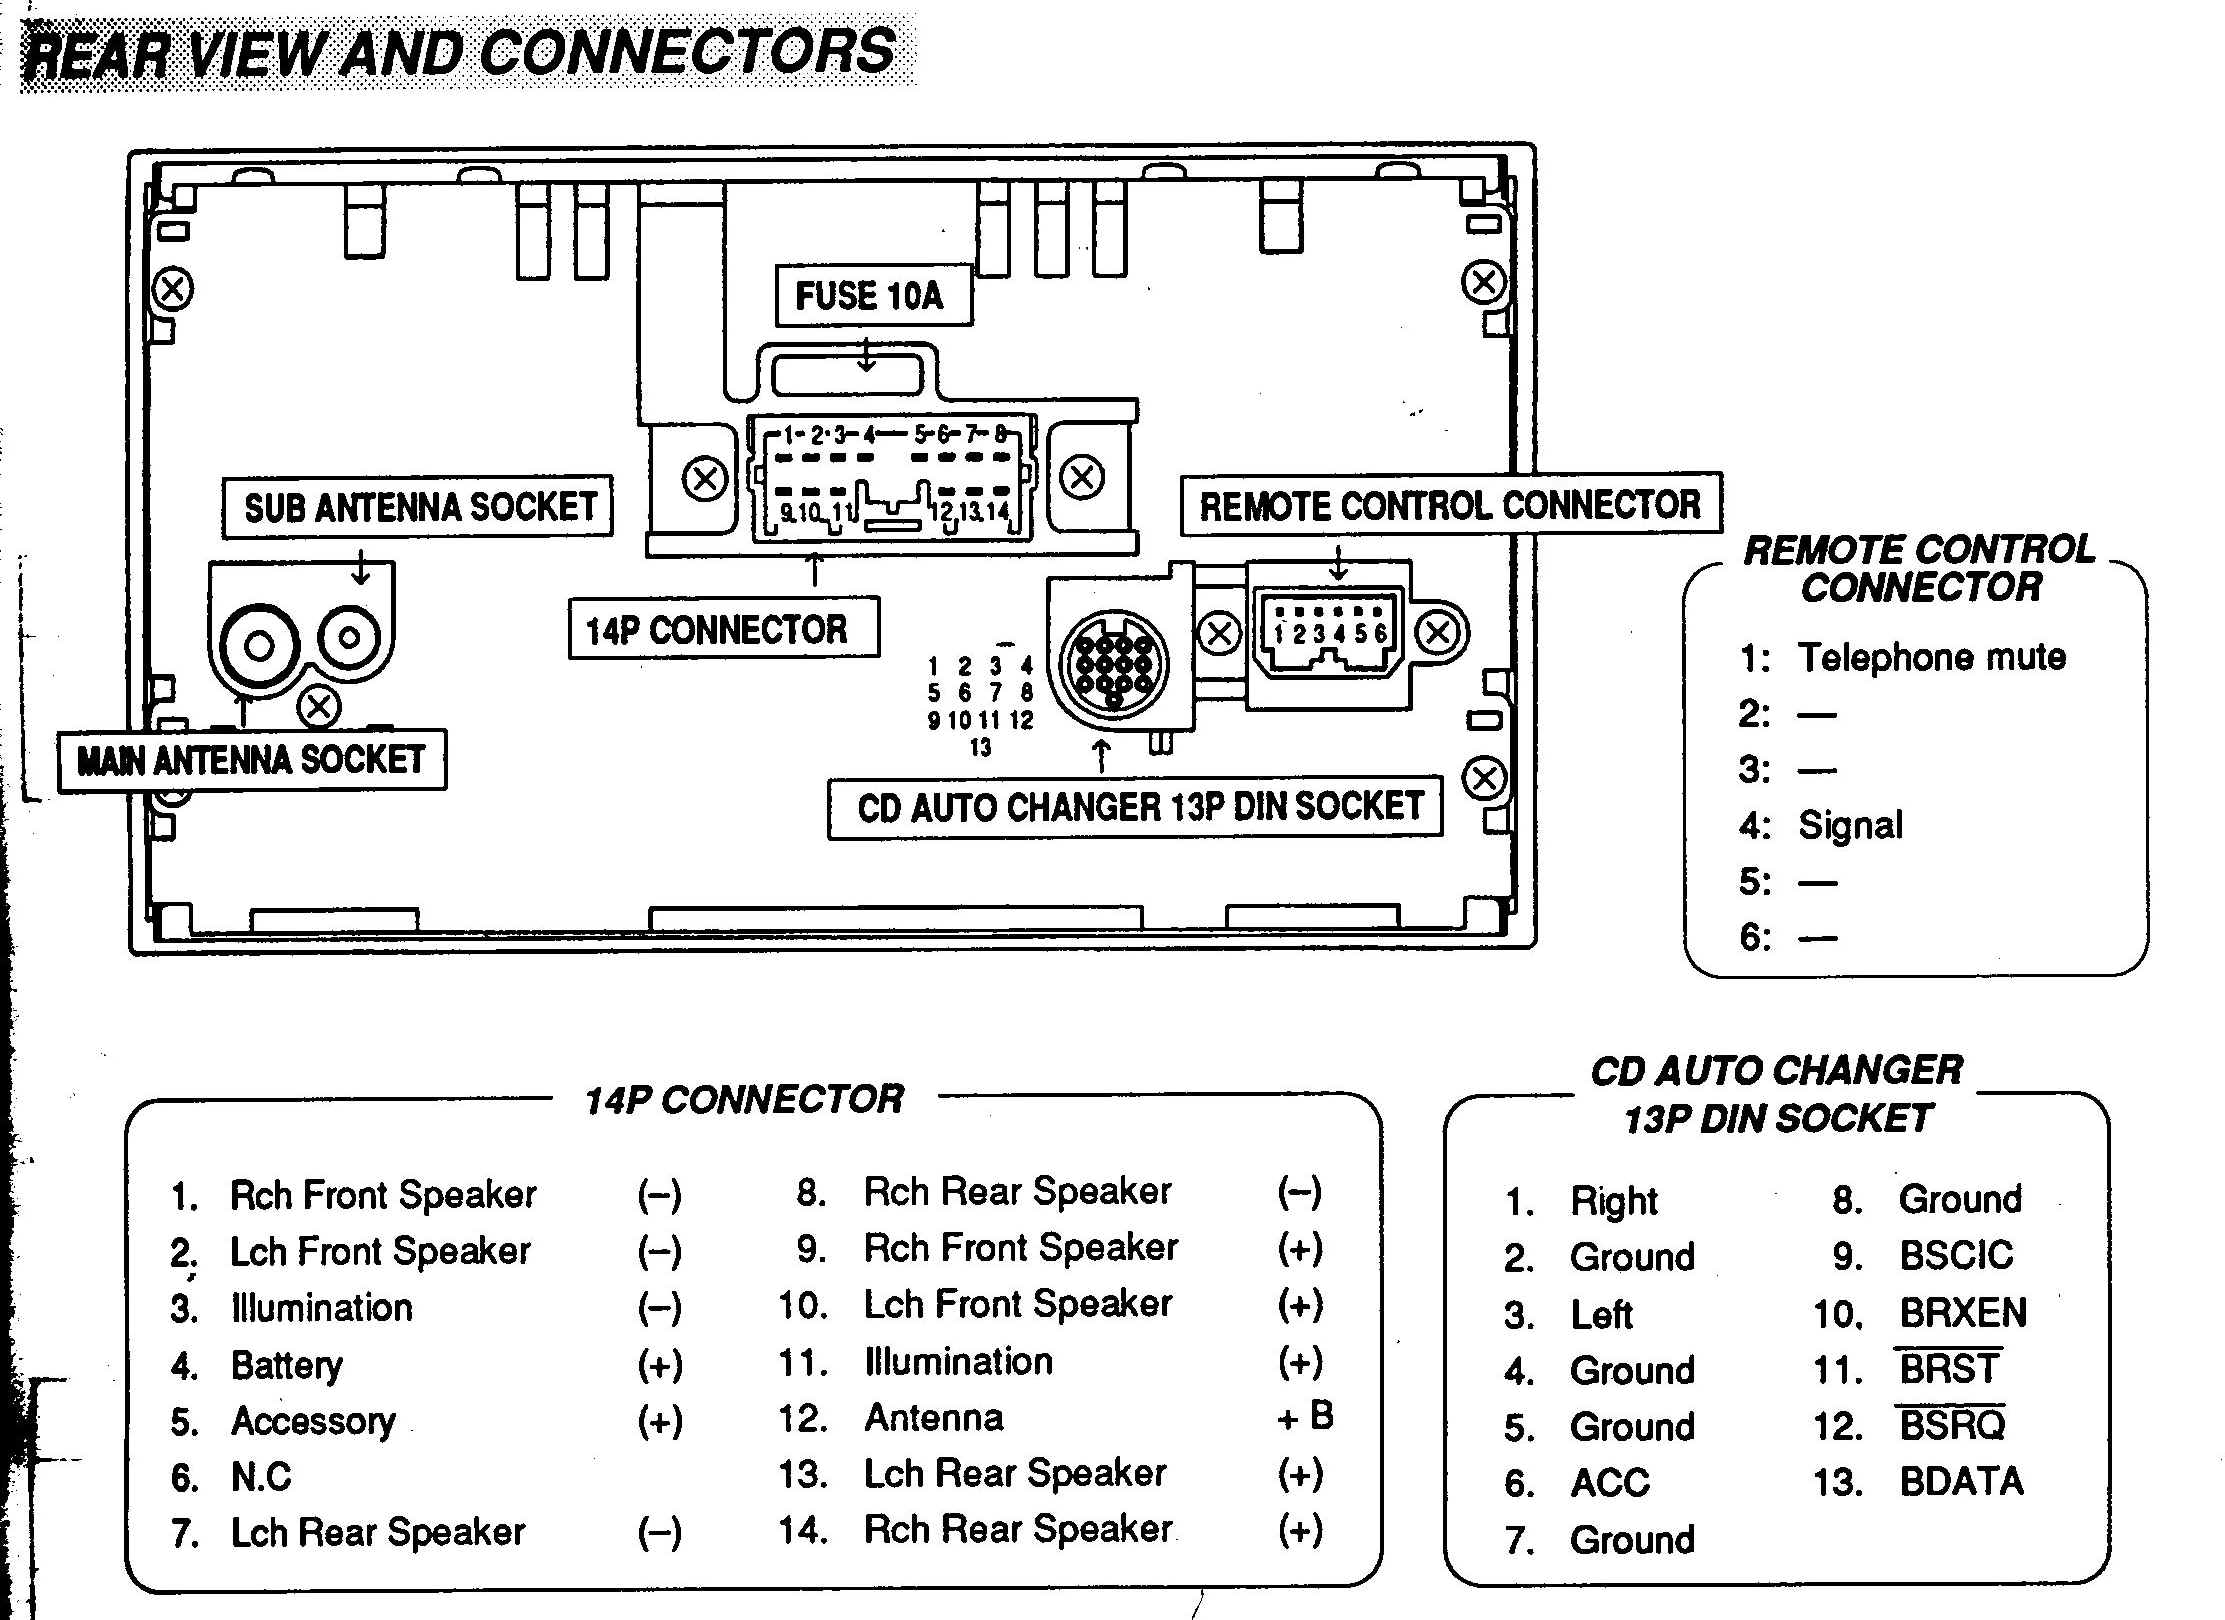 WireHarnessMit121003 car audio wire diagram codes mitsubishi factory car stereo on mn triton stereo wiring diagram